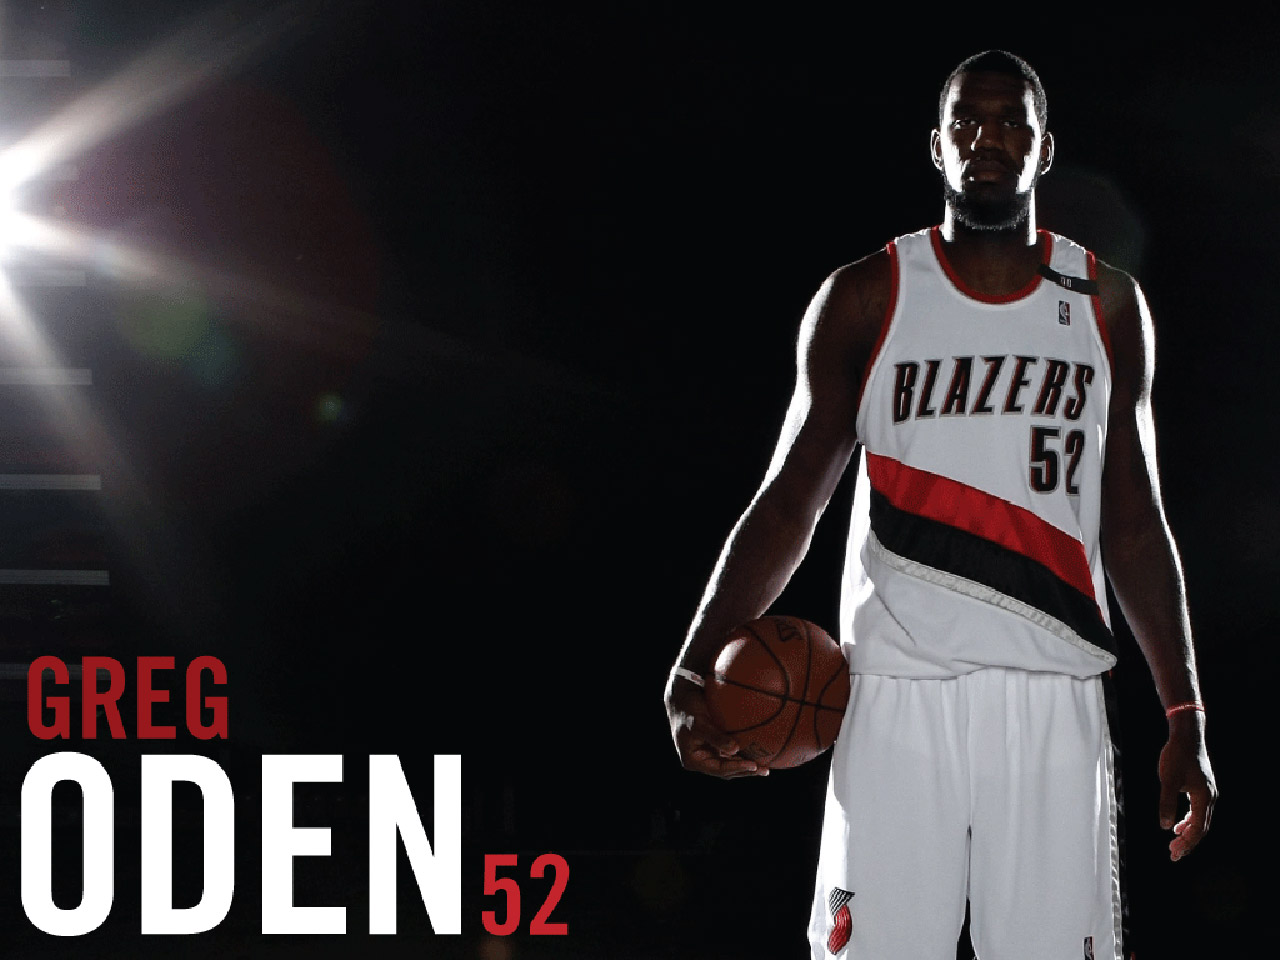 GREG ODEN Blazers Wallpaper - Basketball Wallpapers